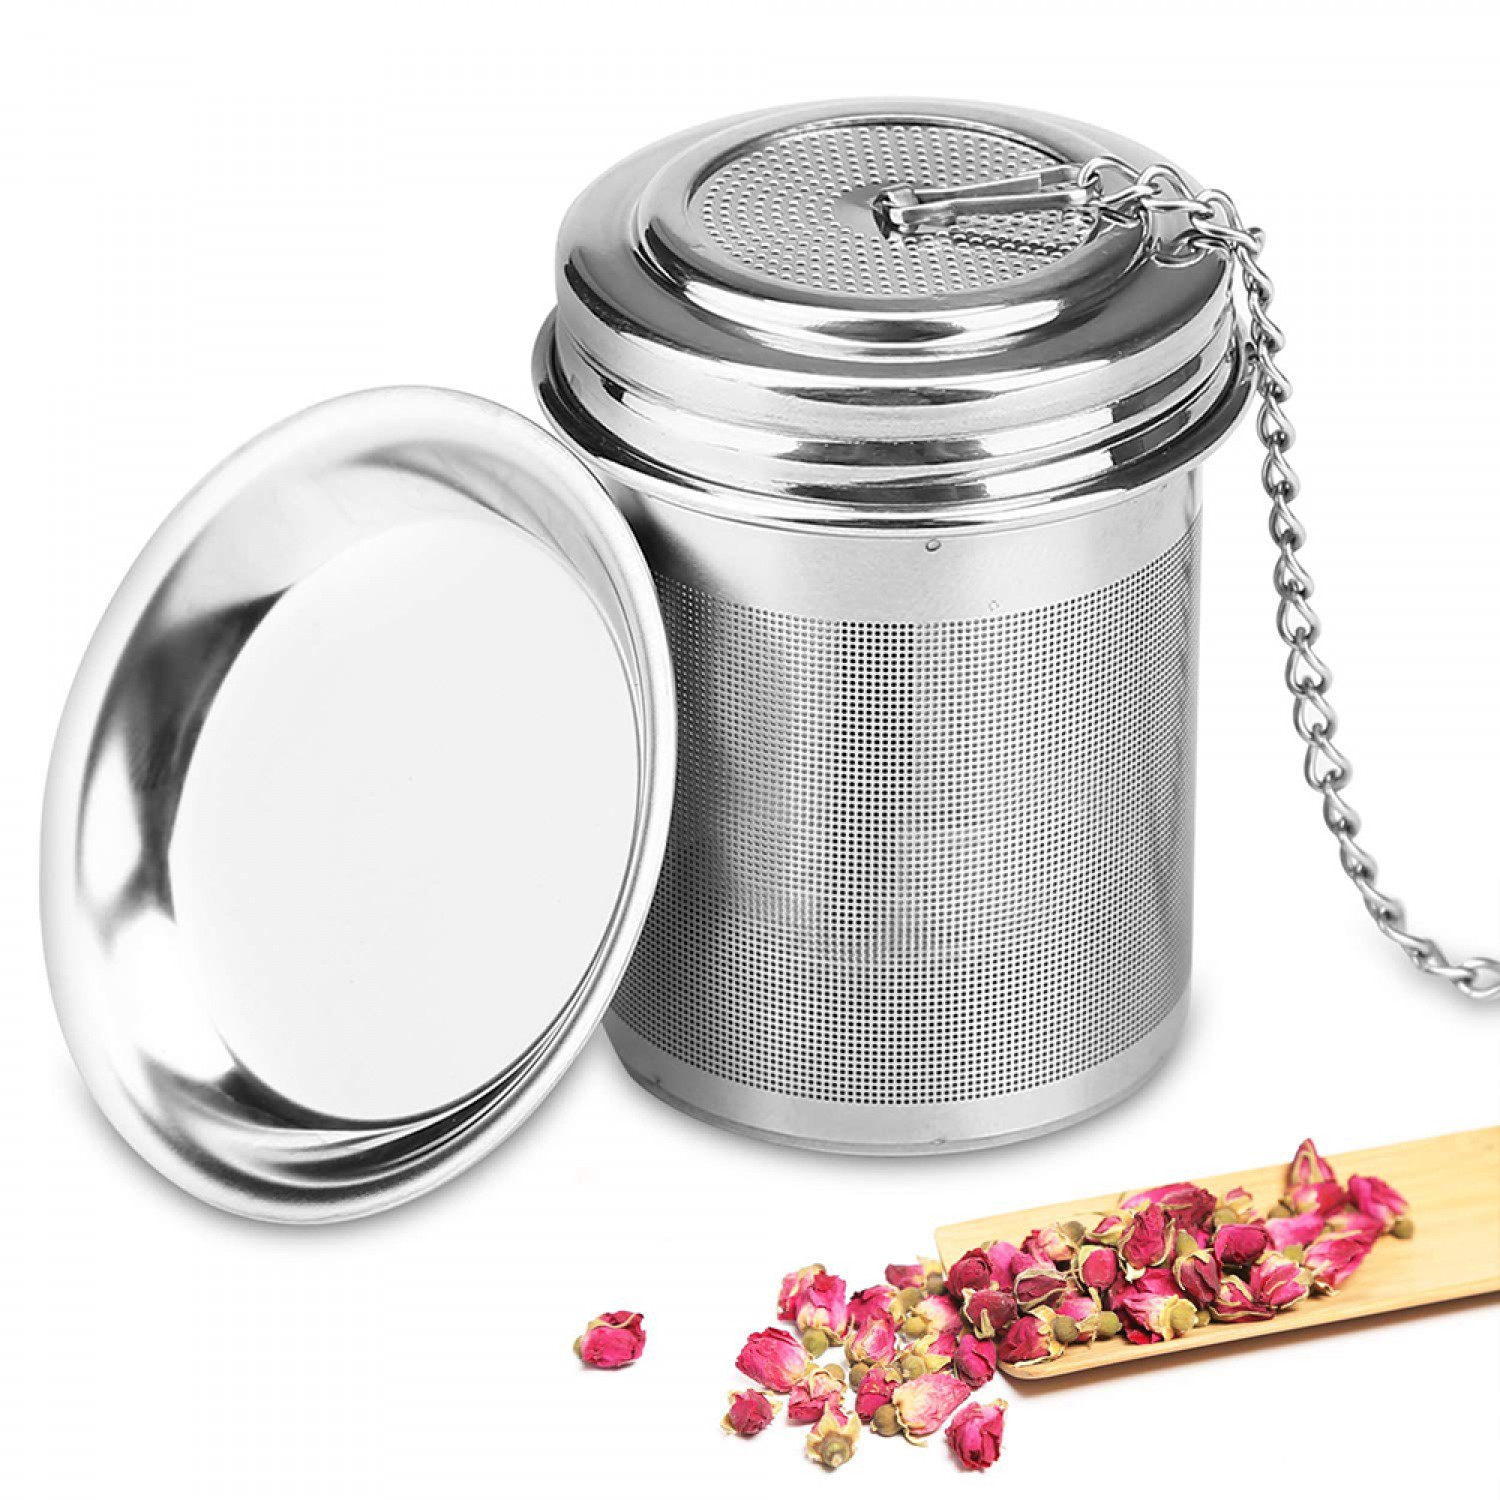 HOT Tea Ball Infuser & Cooking Infuser, Extra Fine Mesh Tea Infuser Threaded Connection 18/8 Stainless Steel with long chain